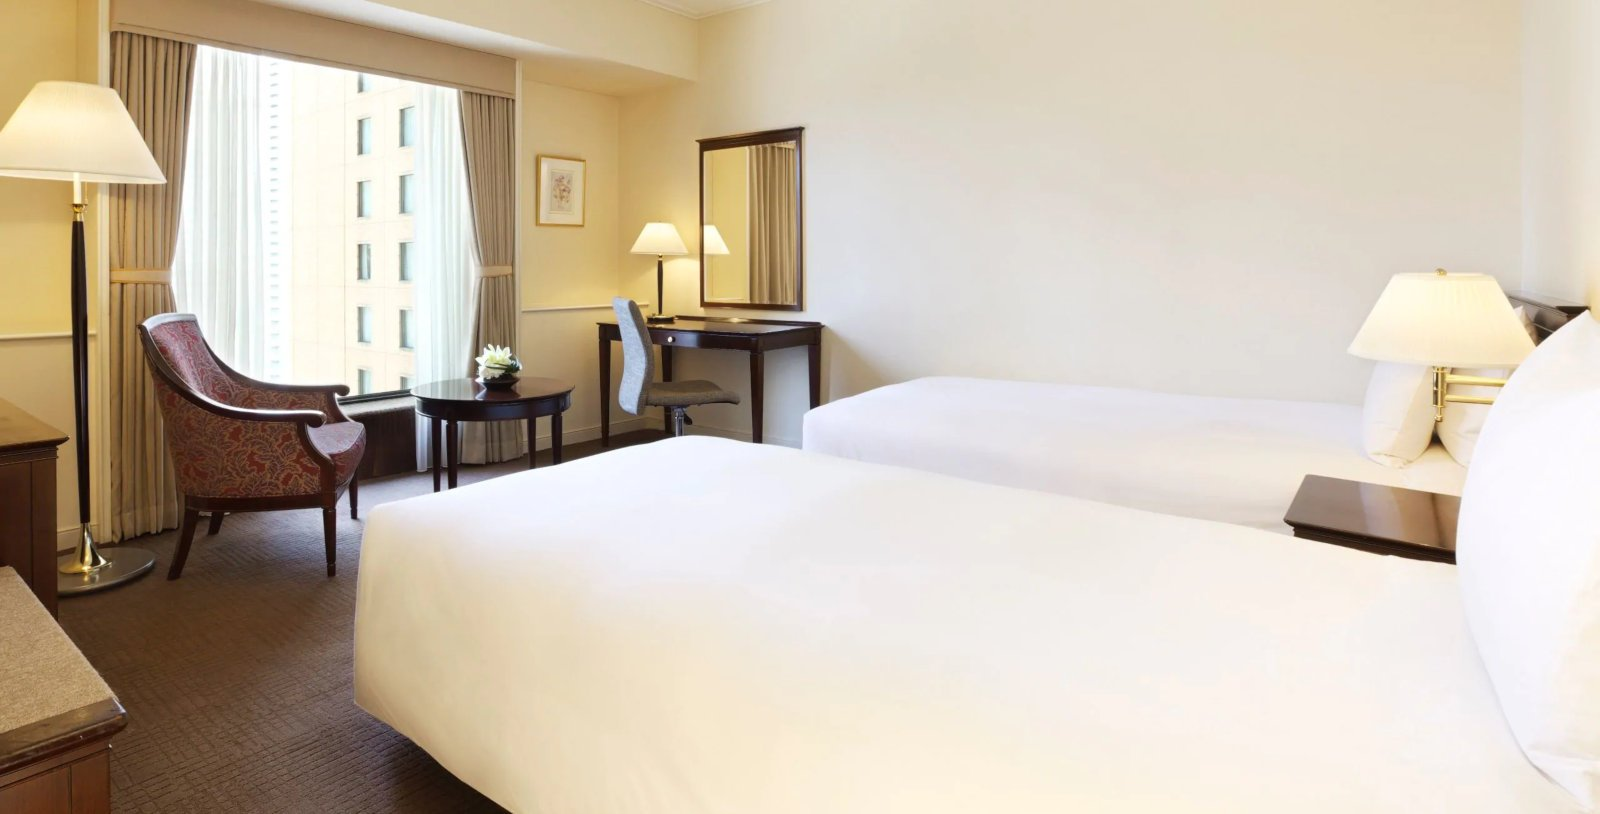 Gay travel to Tokyo - the Hyatt Regency is a luxurious spot to stay.